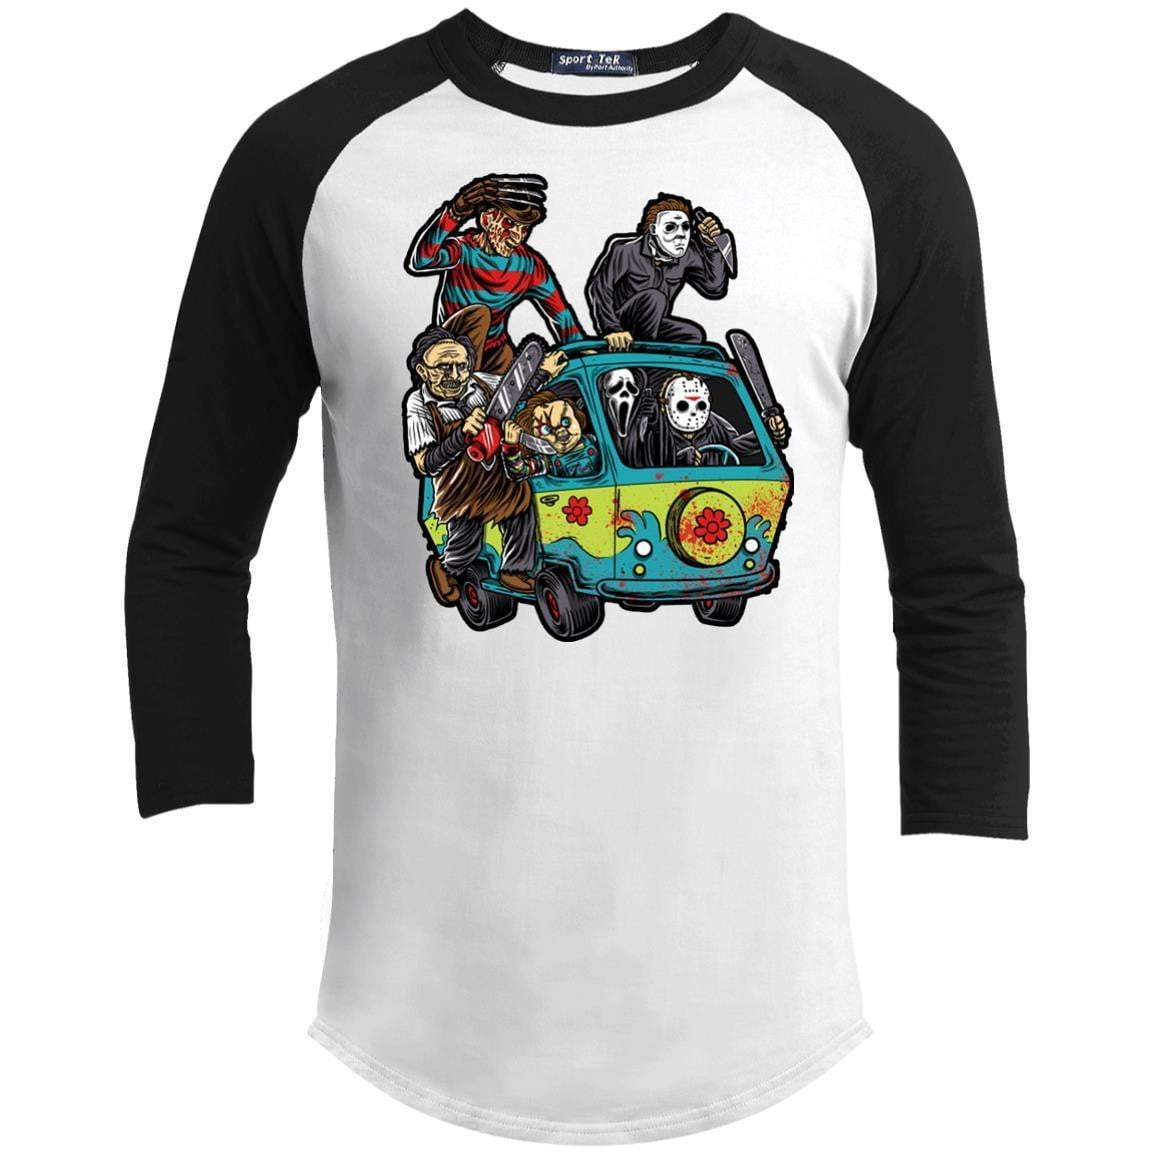 THE MASSACRE MACHINE Unisex 3/4 Sleeve Raglan